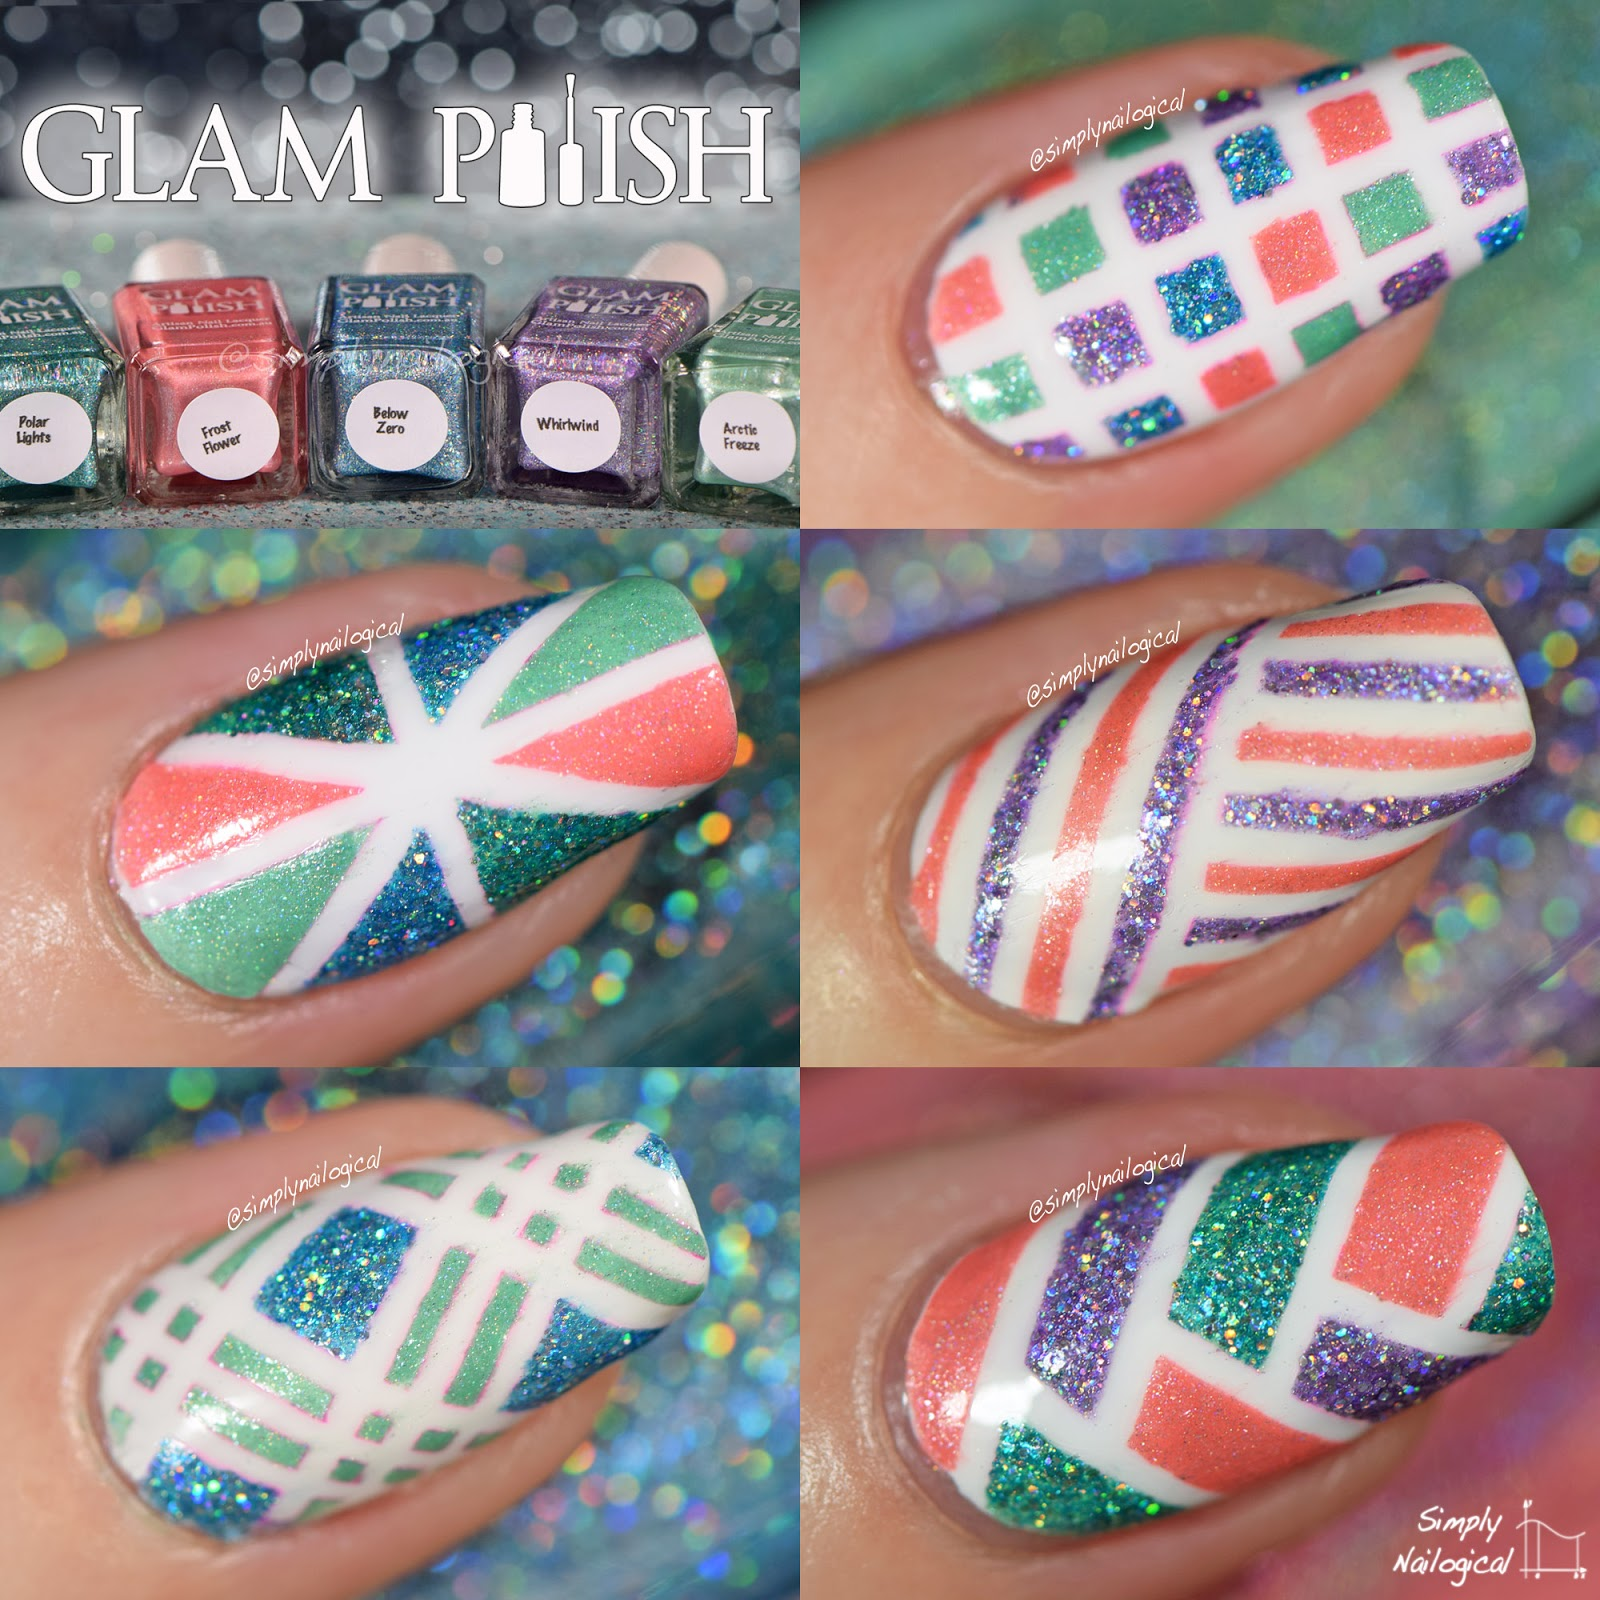 Glam Polish Mid-winter's dream 2014 collection